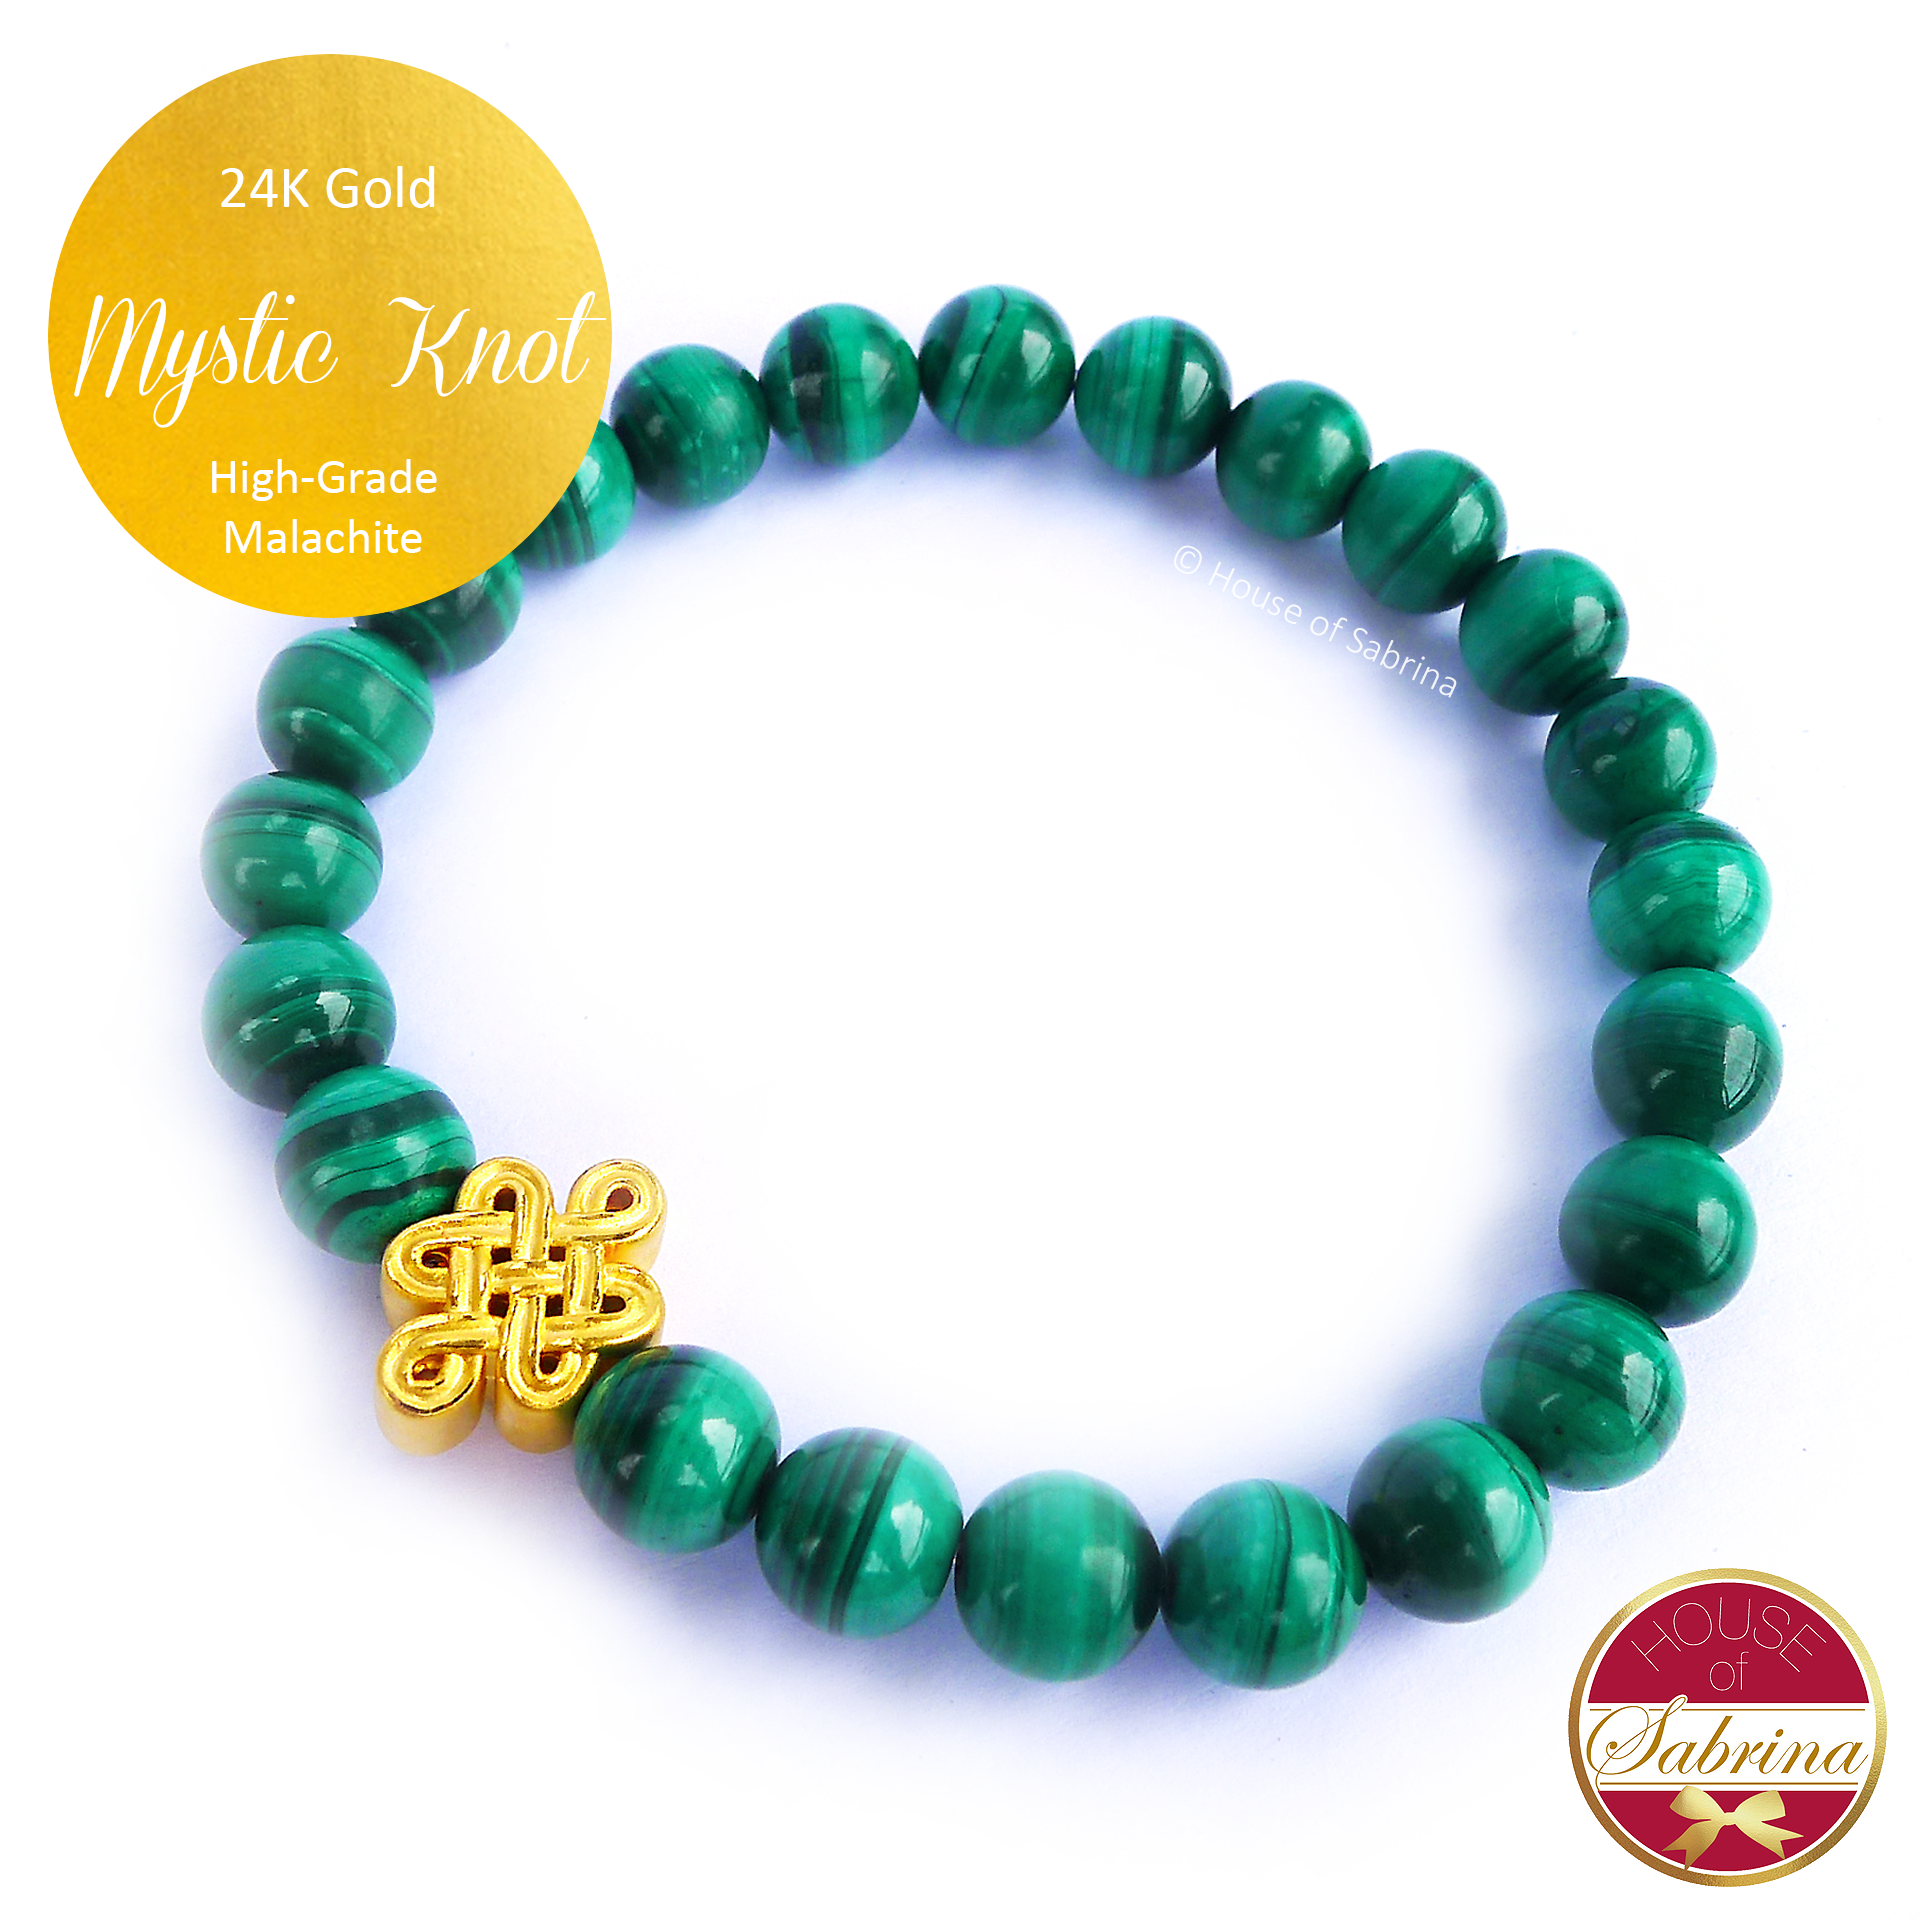 24K Gold Mystic Knot on High Grade Malachite Gemstone Bracelet